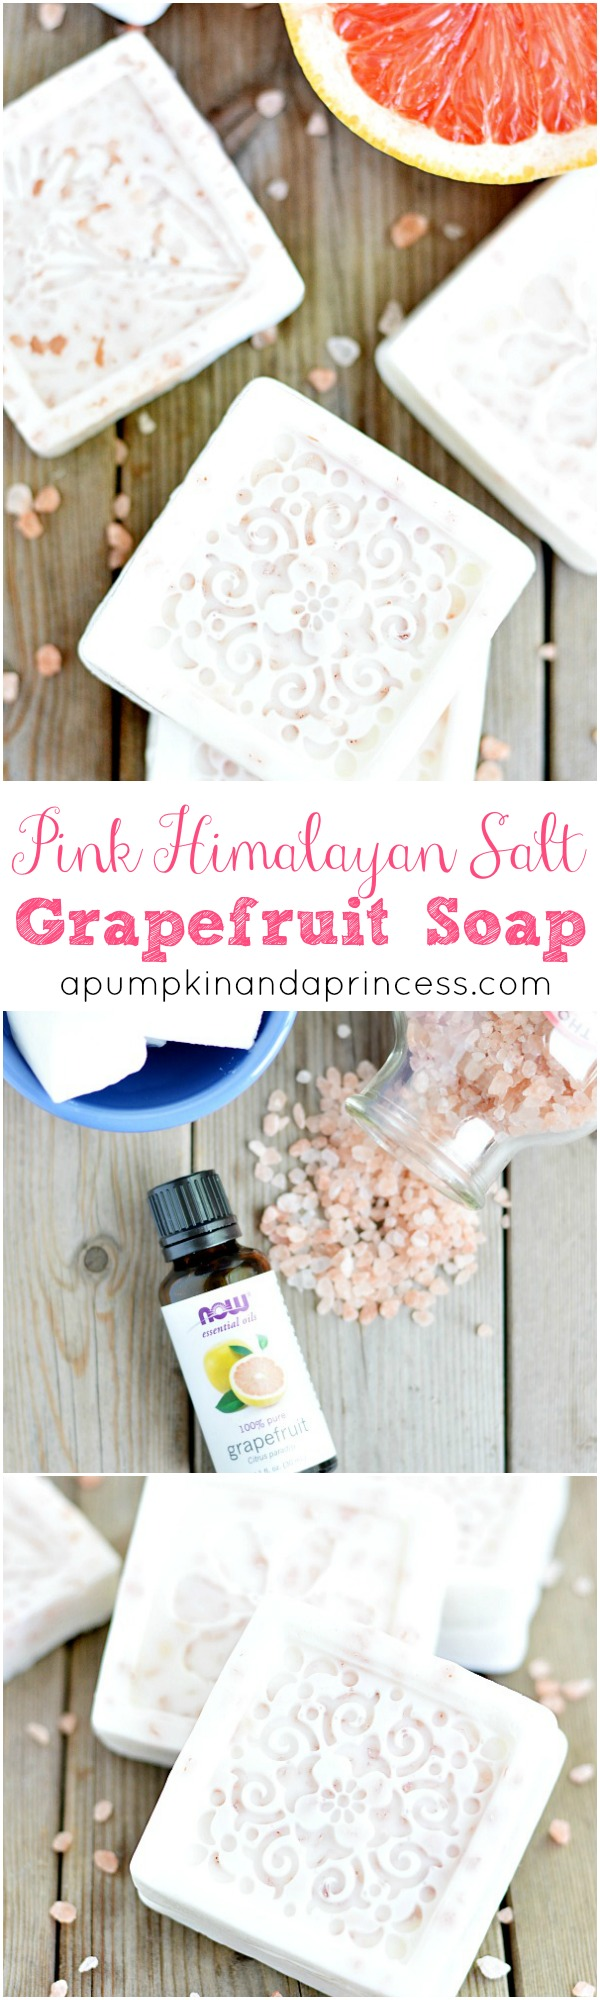 This melt and pour soap recipe is made with goat's milk soap, exfoliating Himalayan salt and grapefruit essential oil #soap #HimalayanSalt #grapefruit #essentialoil